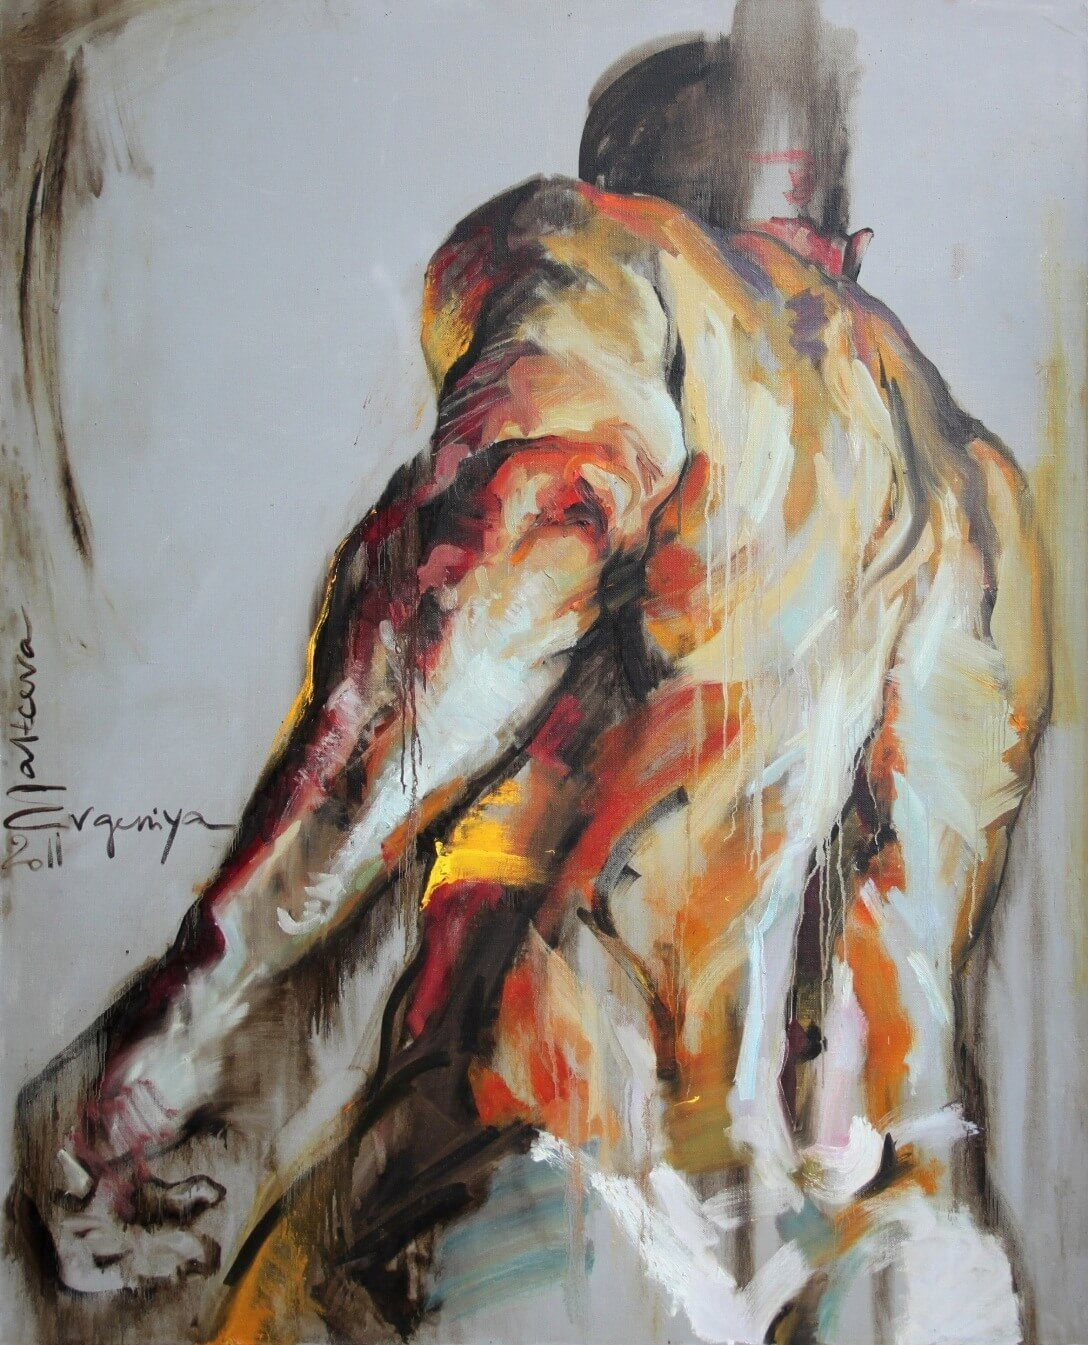 Figurative Expressionist Art by Evgeniya Maltseva